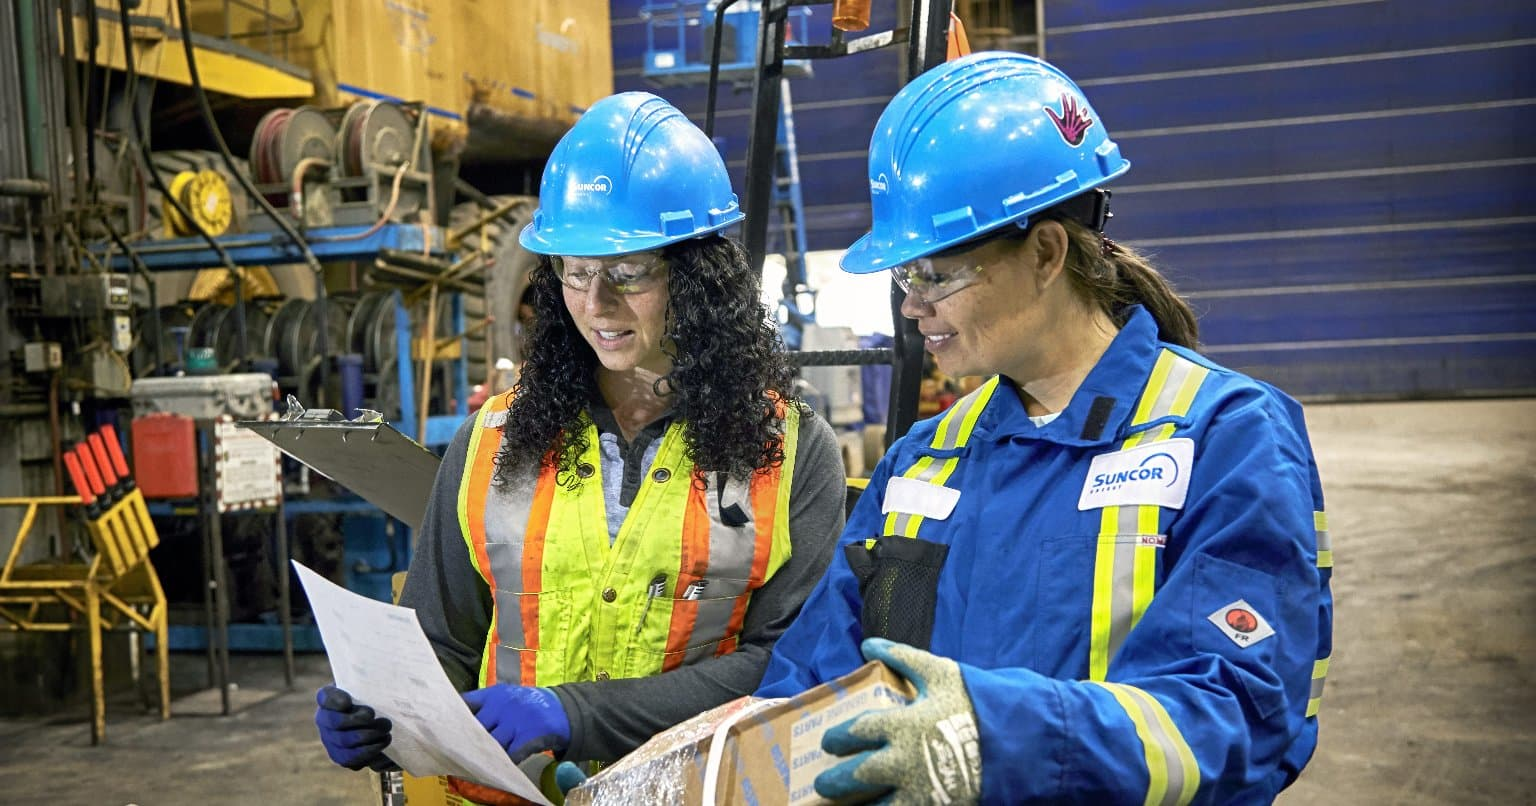 Two women in personal protective gear at our refinery